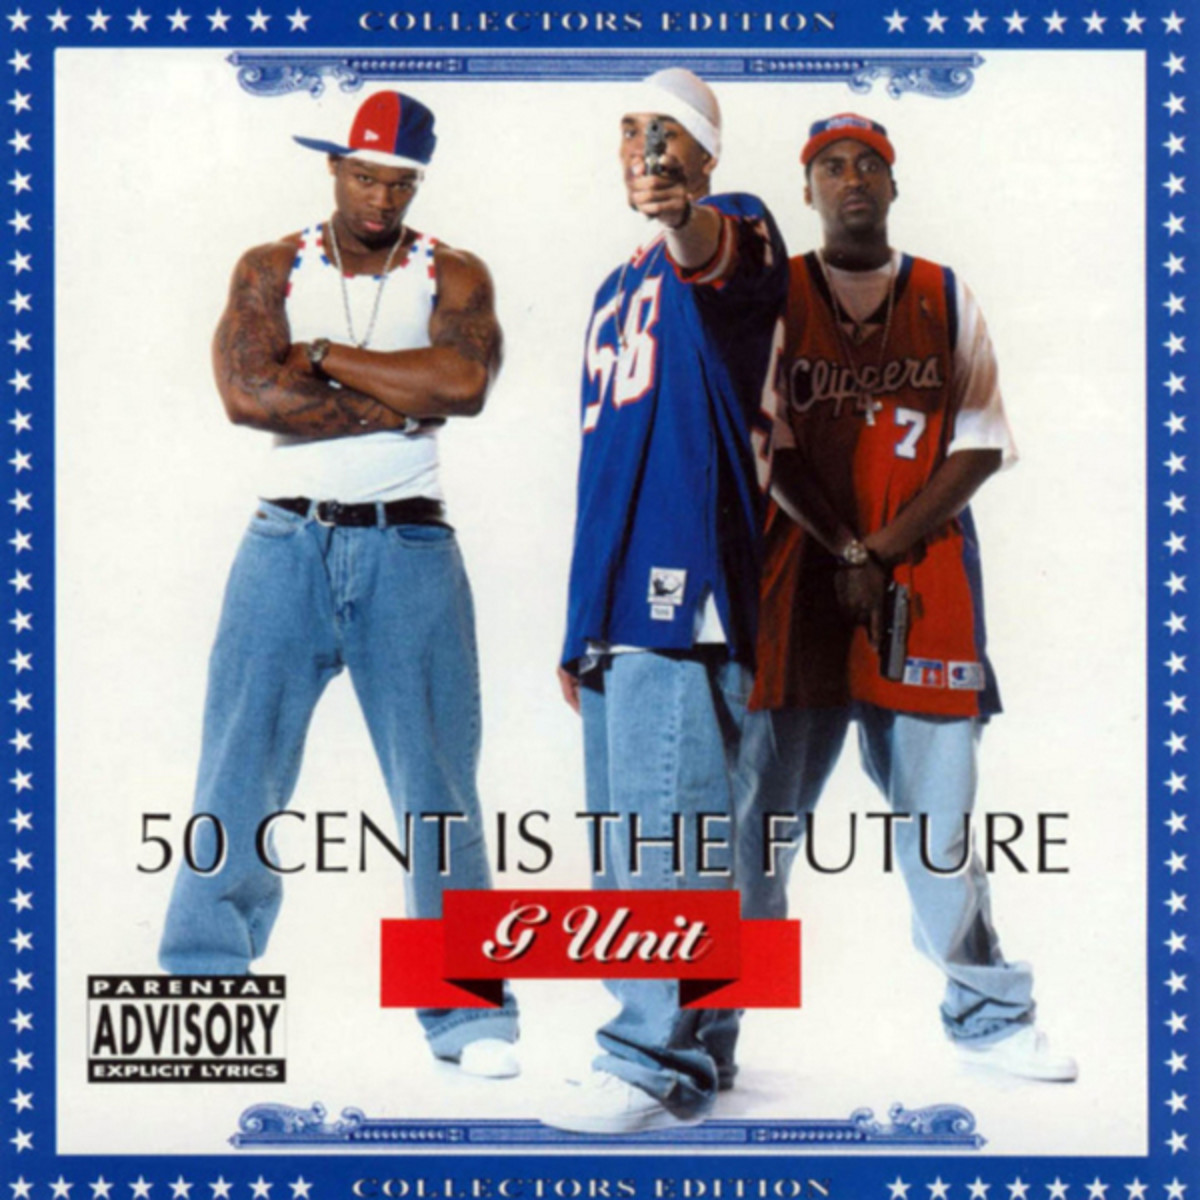 g-unit-50-cent-is-the-future-cover